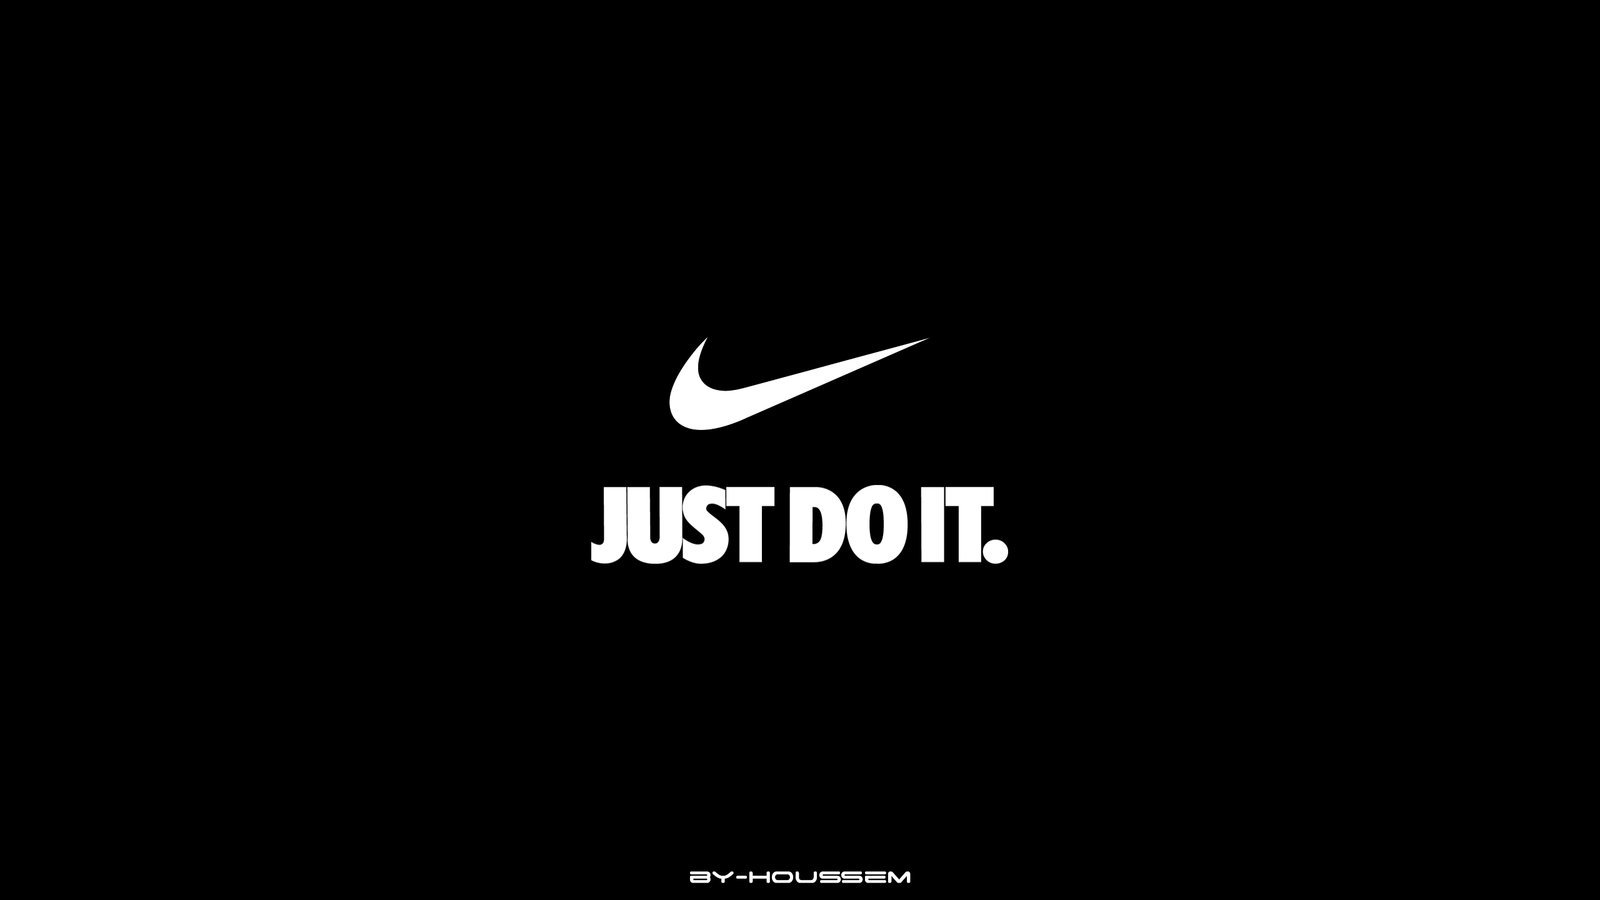 Nike Wallpaper Just Do It - WallpaperSafari